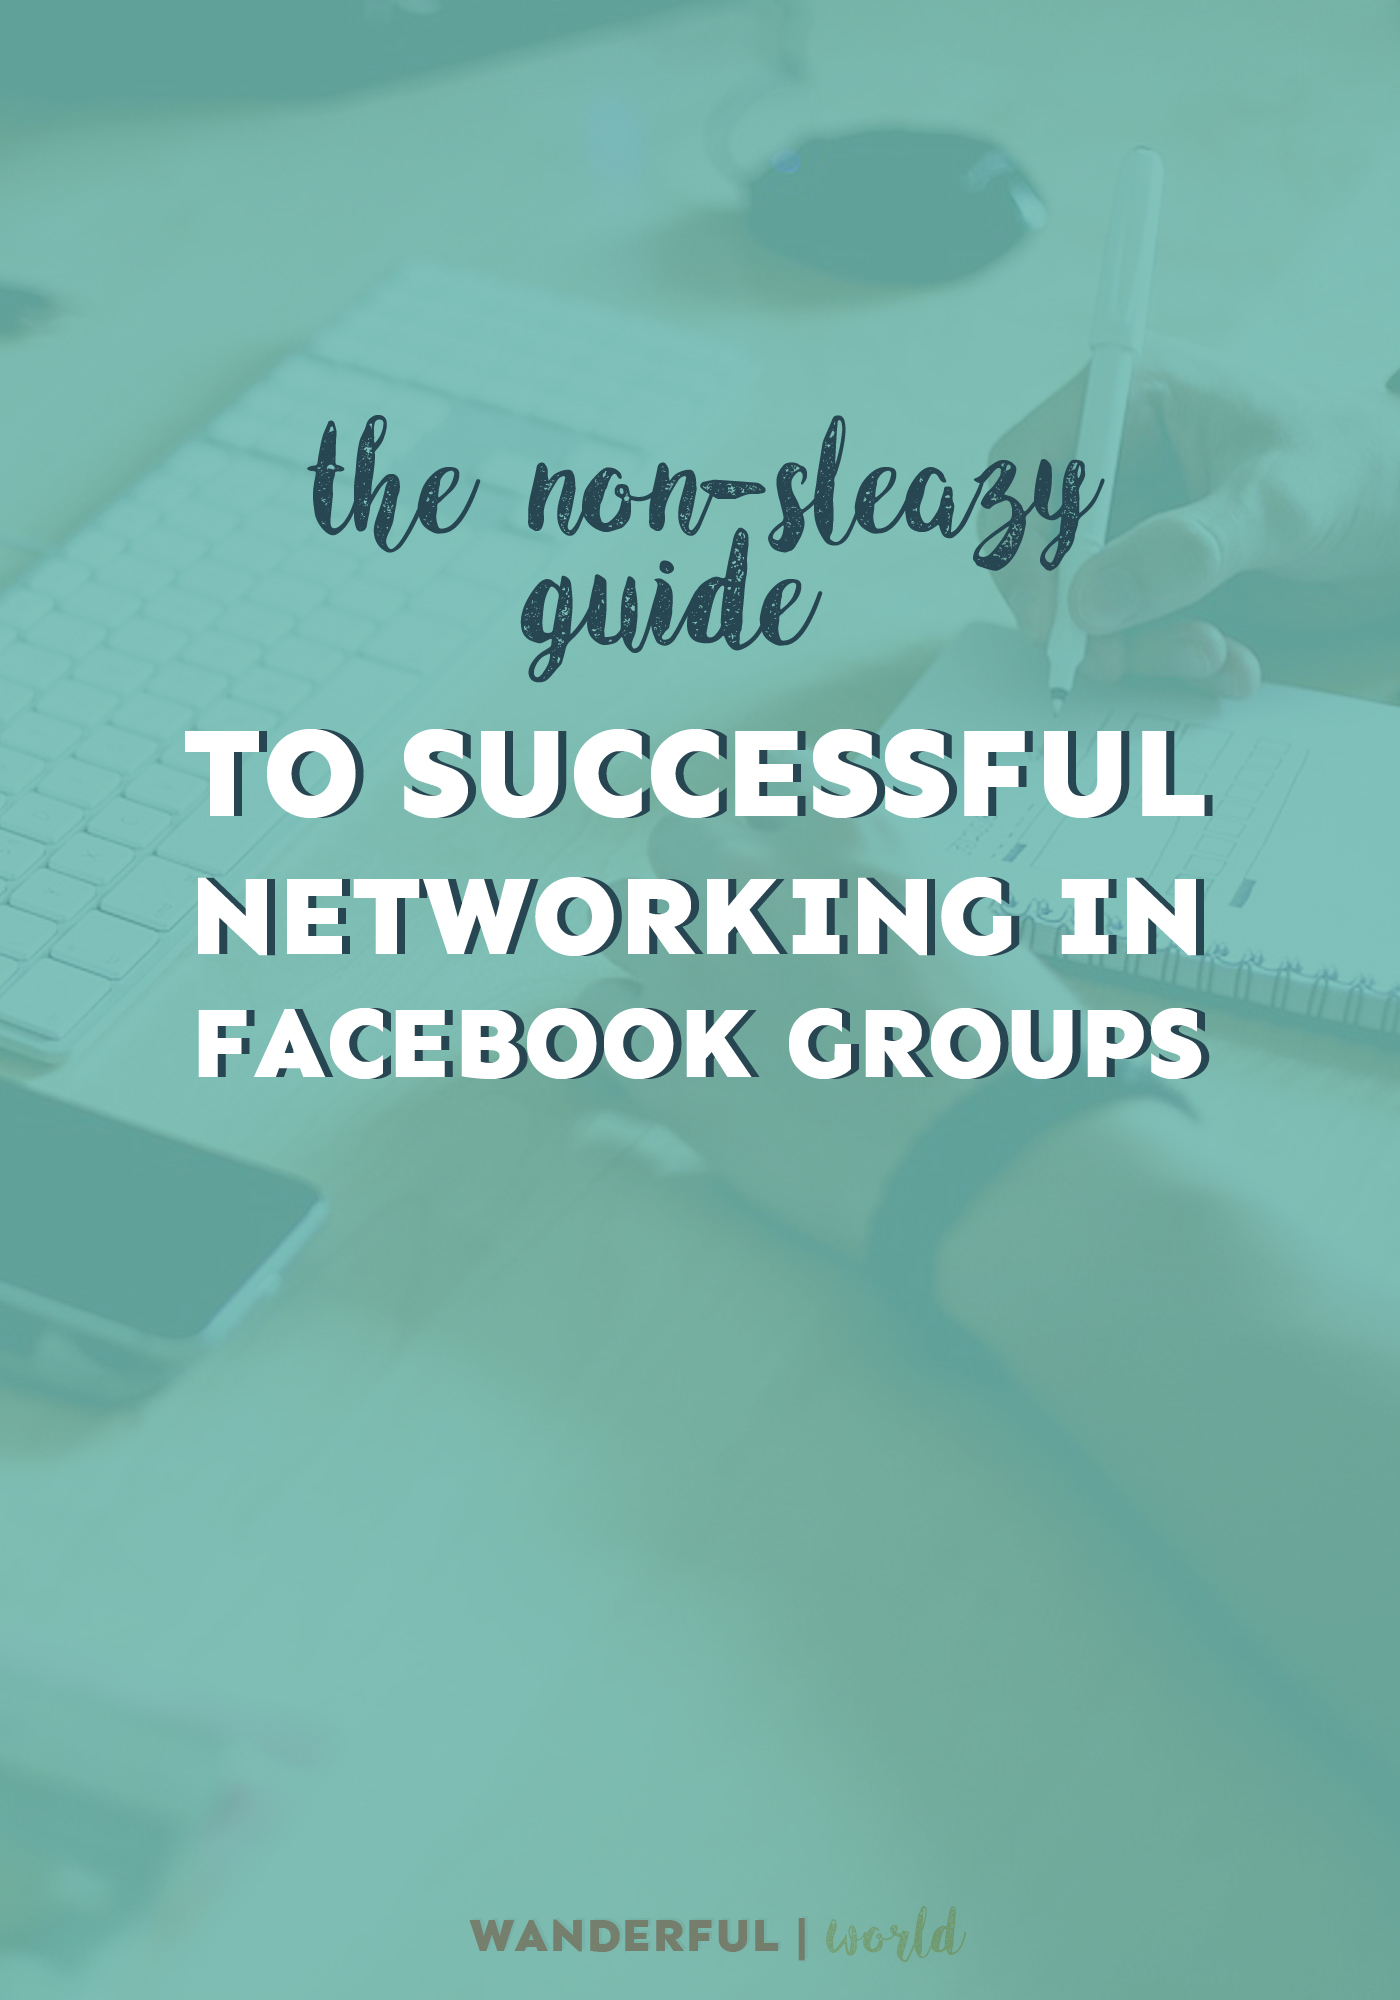 Learn how to successfully network in Facebook groups and land more clients!